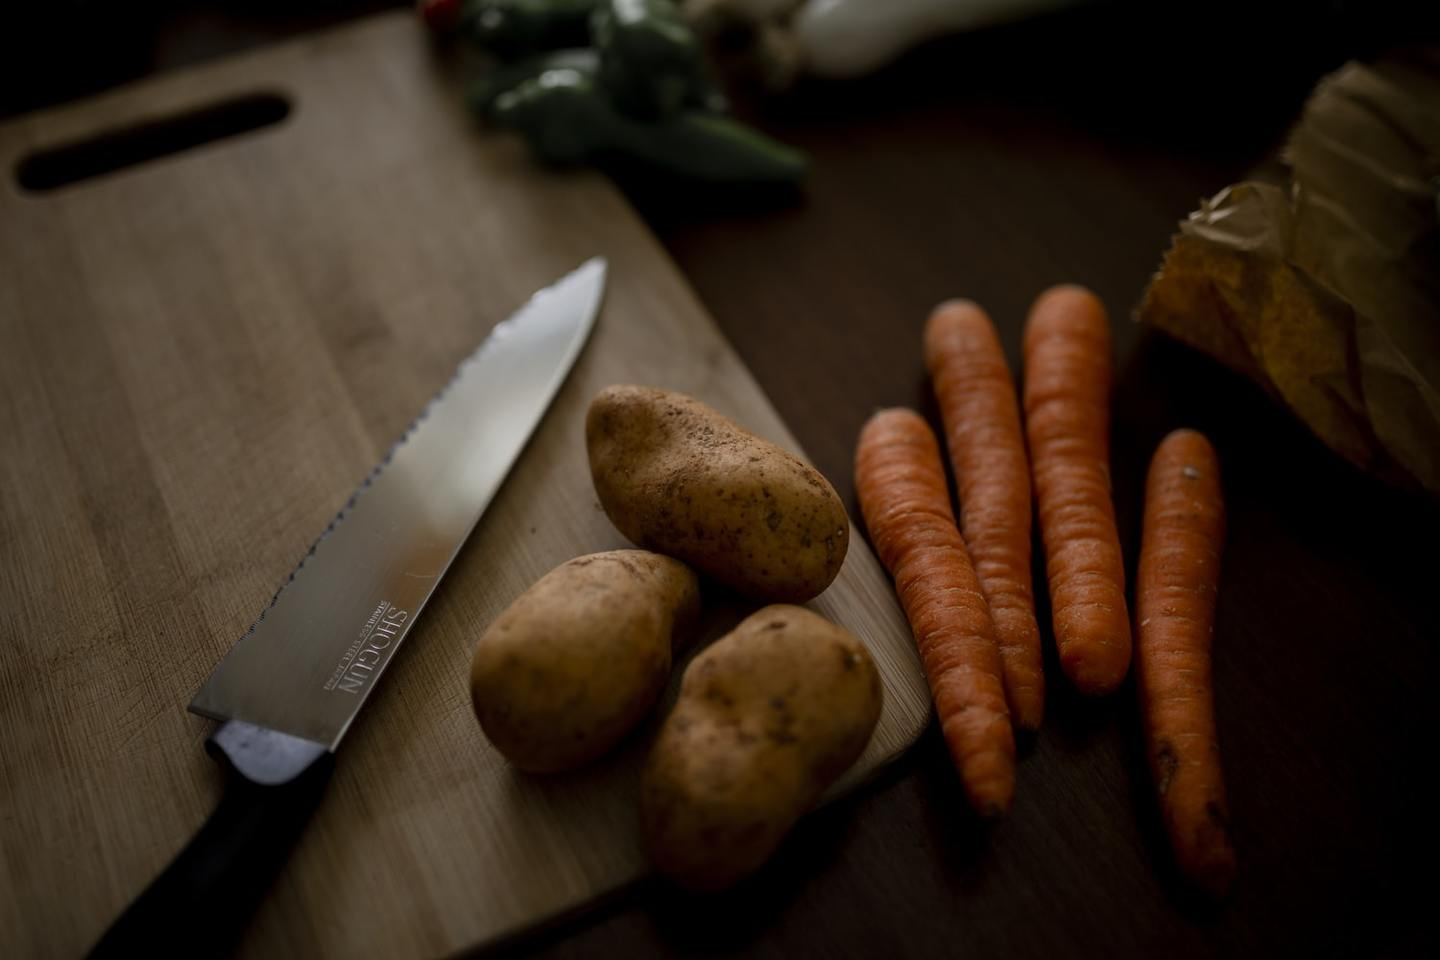 Potatoes and carrots on a chopping board